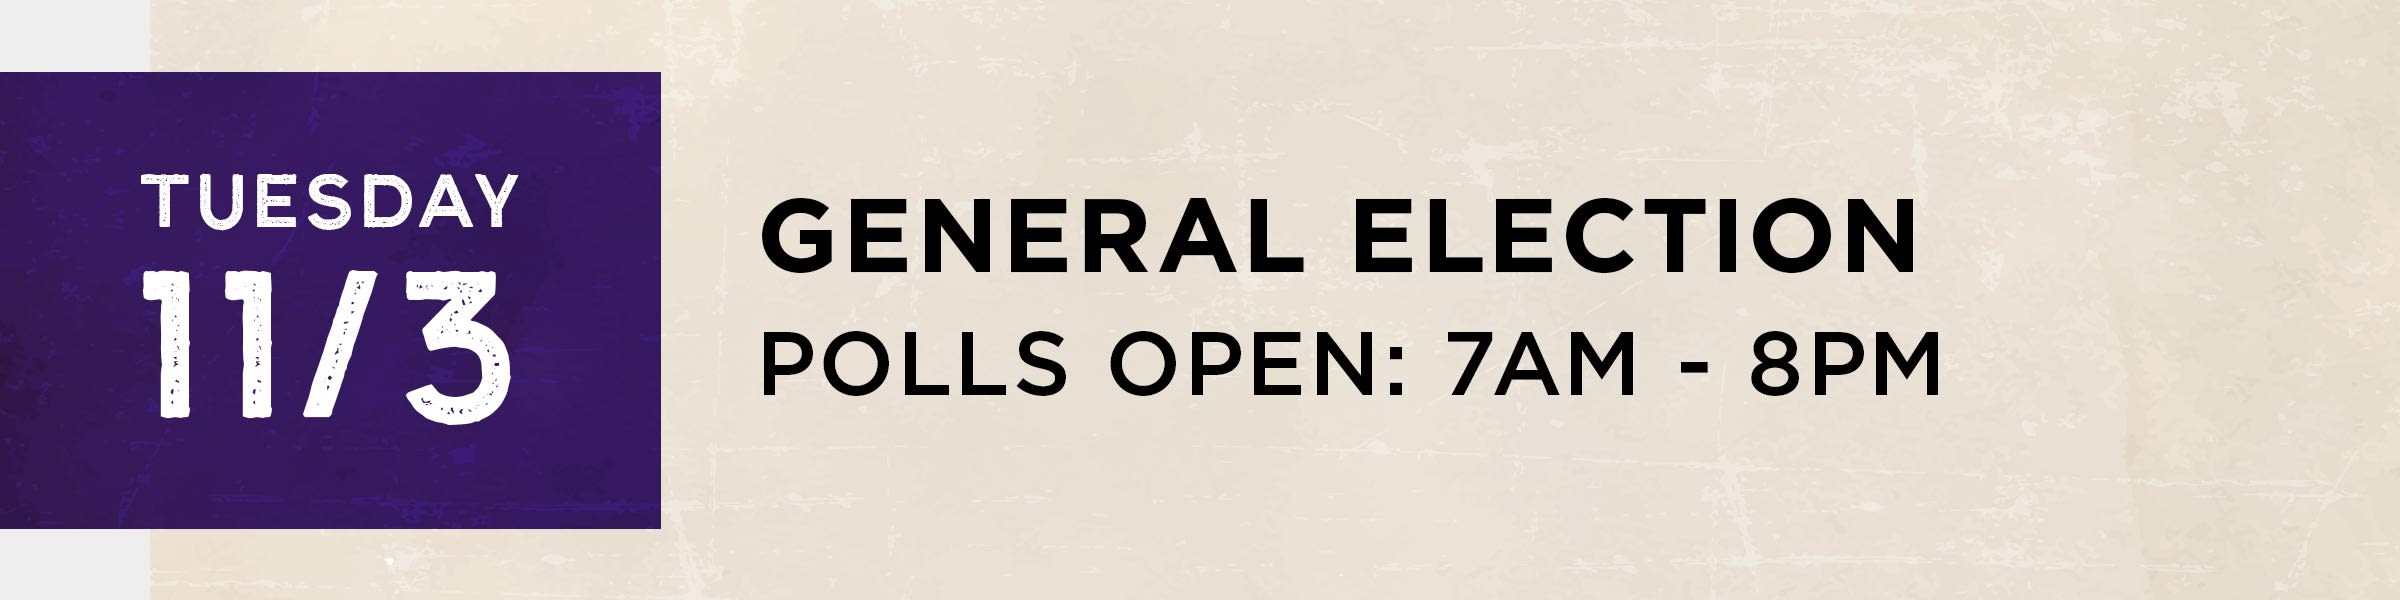 Tuesday, November 3  General Election. Polls open 7 am - 8 pm.